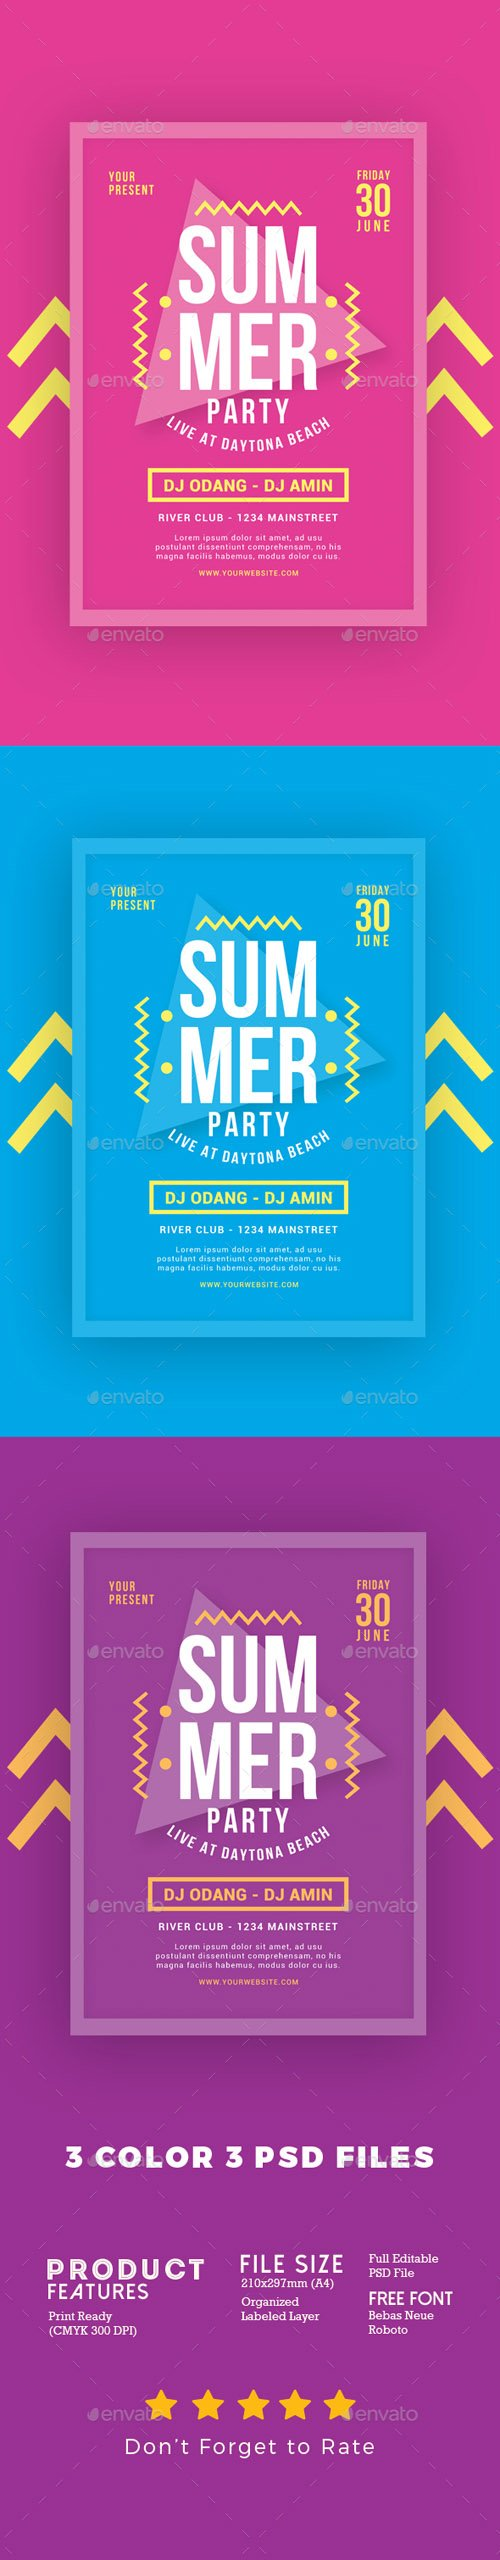 GR - Summer Party Flyer 20185877